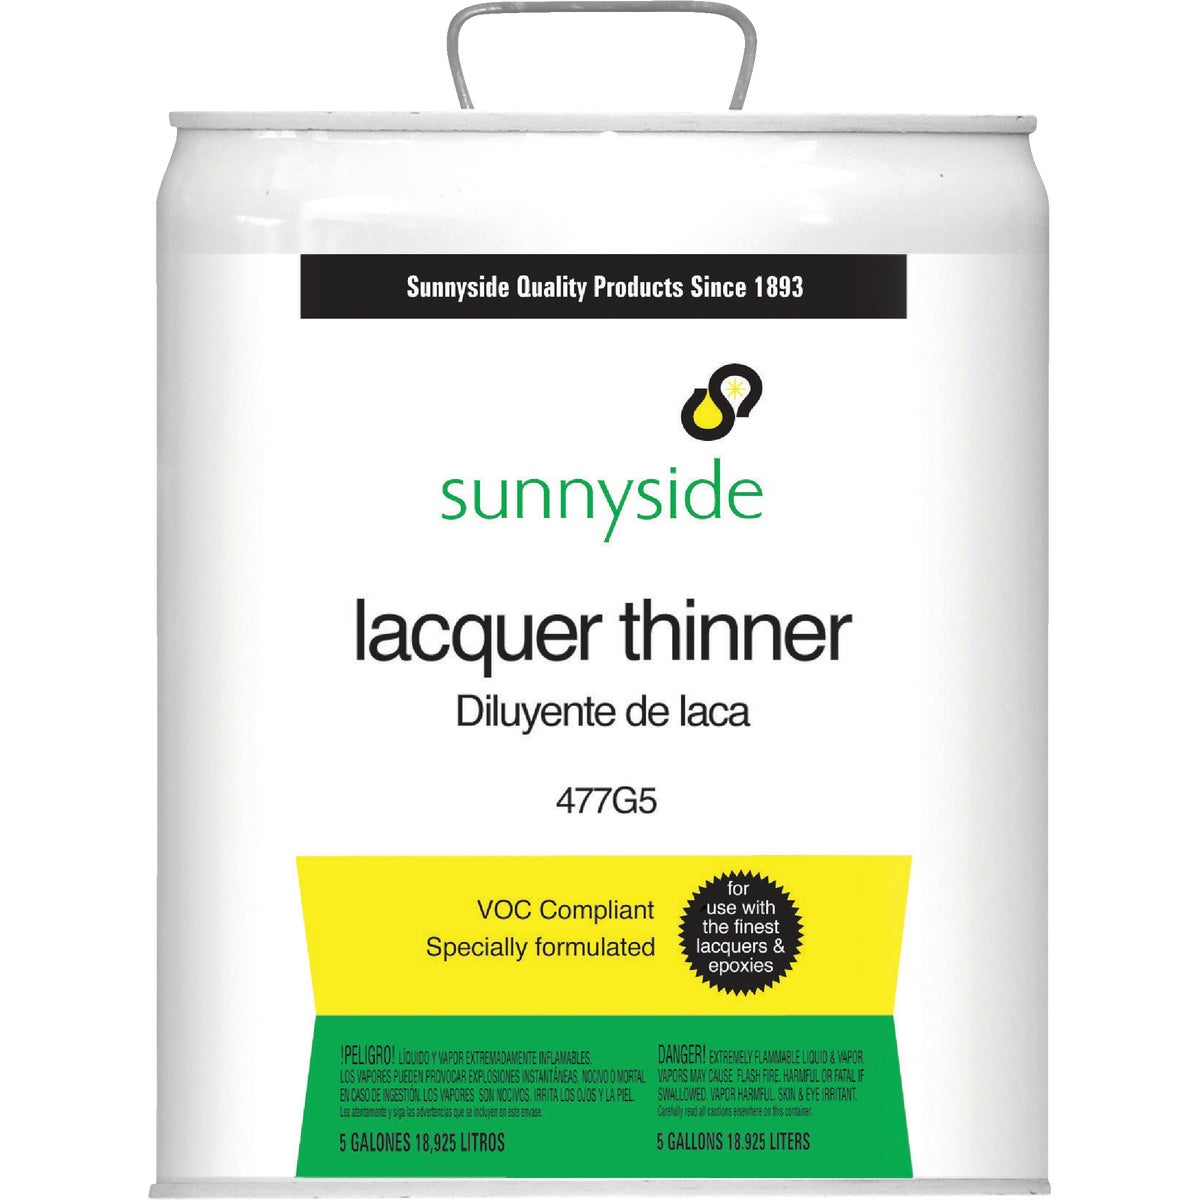 LVOC LACQUER THINNER - 477G5 by Sunnyside Corp